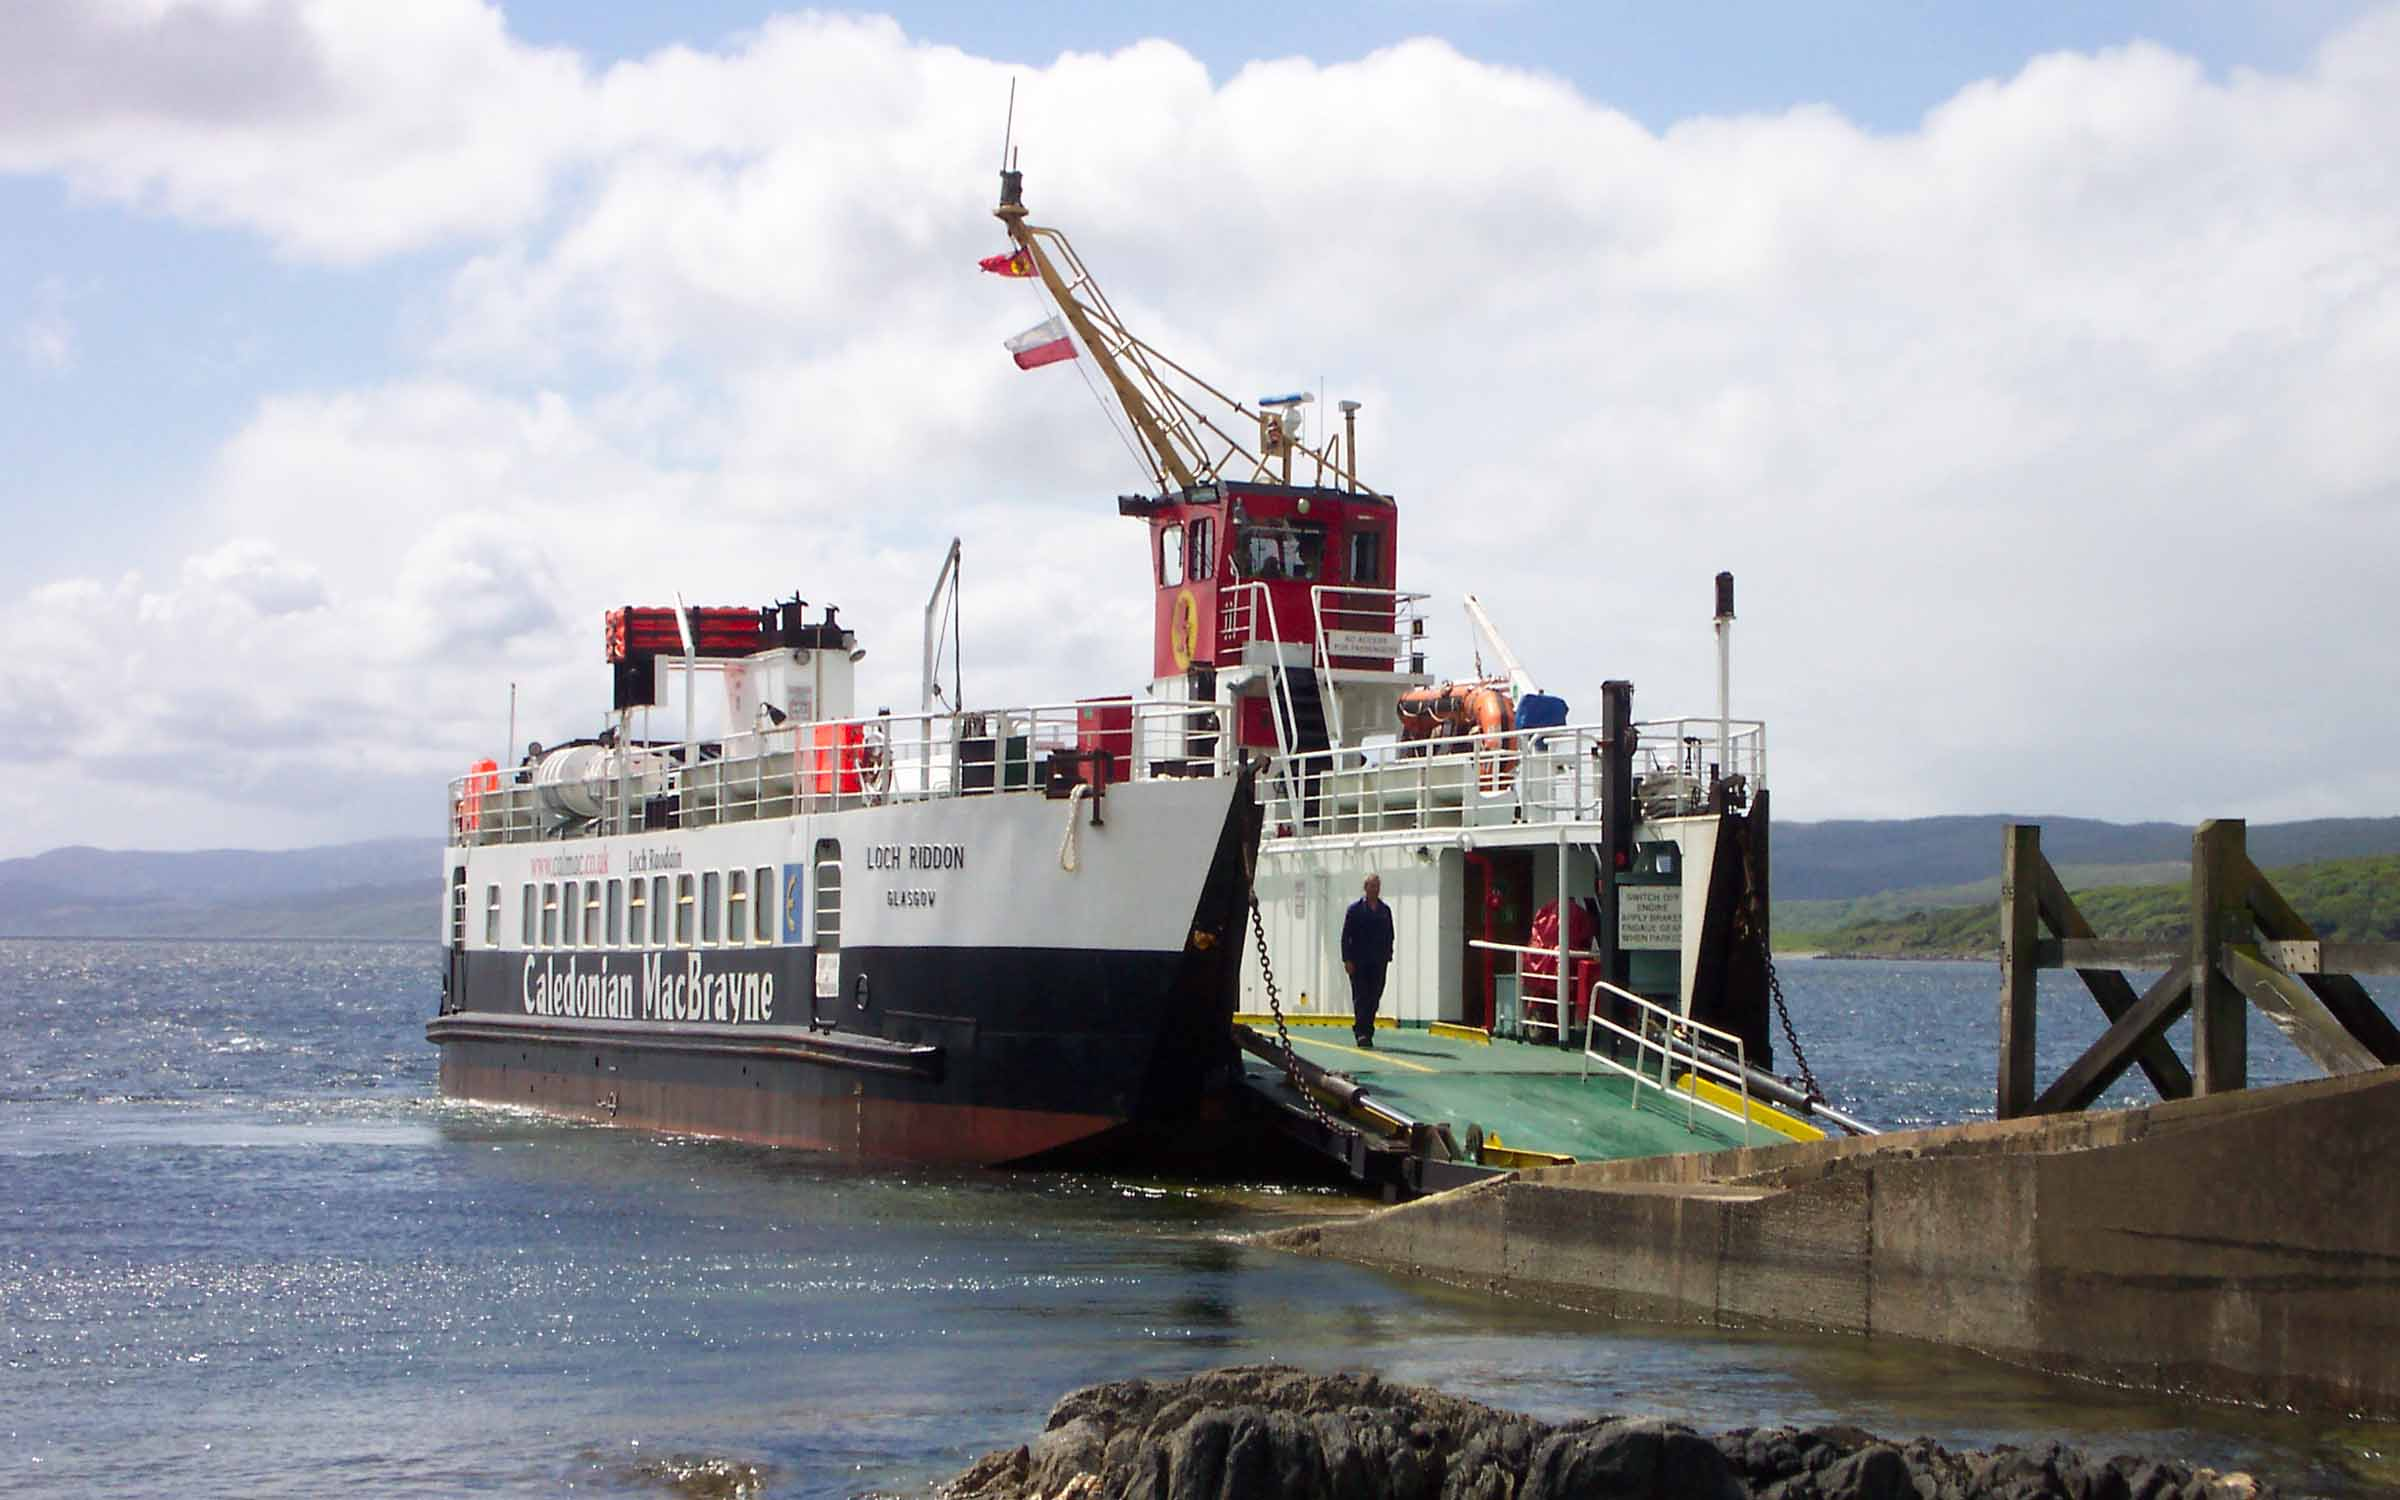 Loch Riddon relieving at Claonaig (Ships of CalMac)